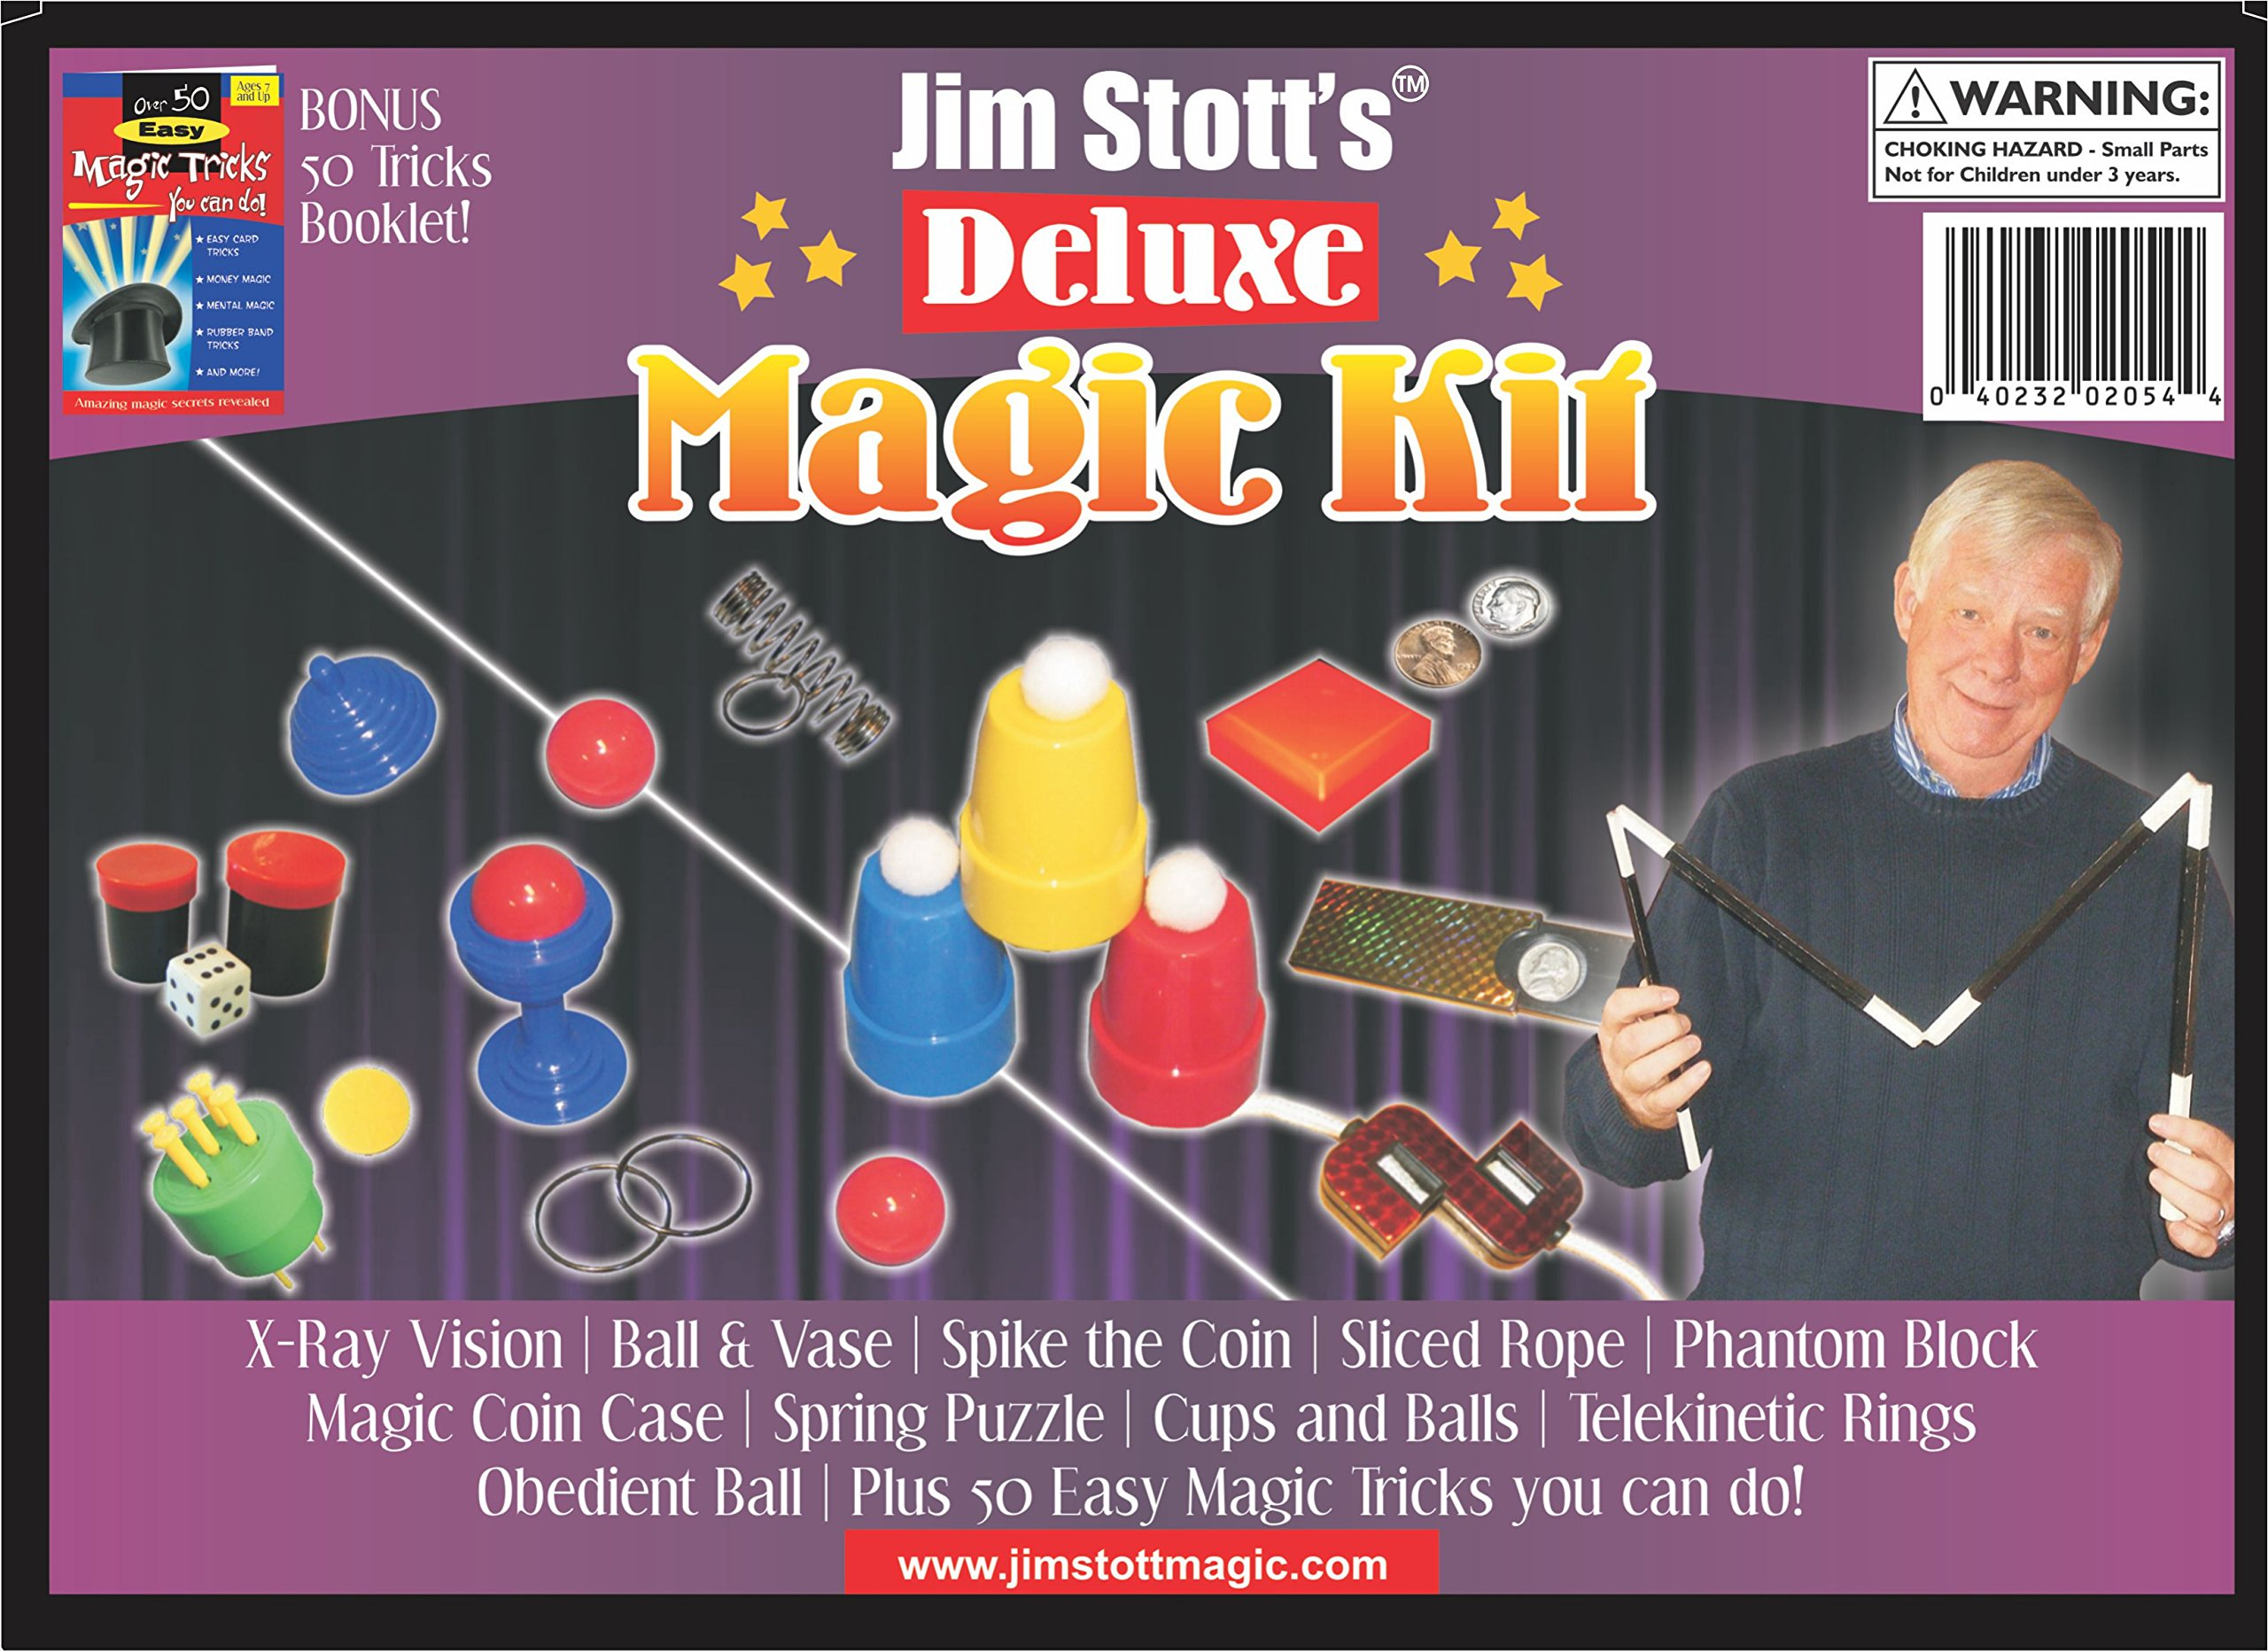 Jim Stott's 'Deluxe Magic Kit' for Kids, Magic Tricks Set for Girls and Boys, Ball and Vase, X-Ray Vision, Spike the Coin, Ring and Spring, Sliced Rope, Magic Coin Case, and Obedient Ball by Jim Stott Magic (Image #1)